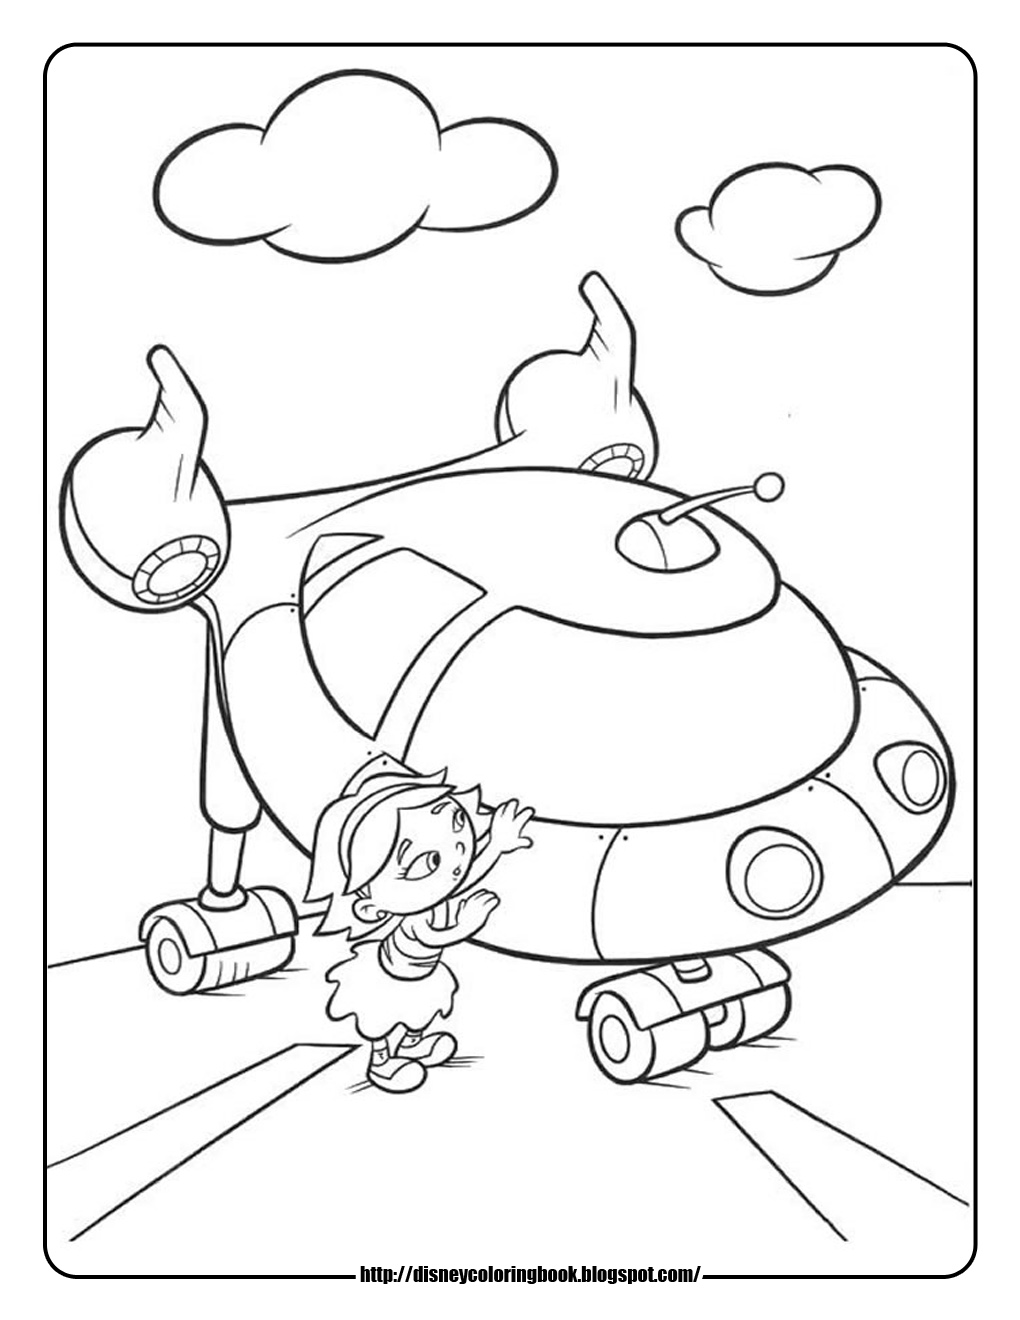 little einstein free coloring pages - photo#16